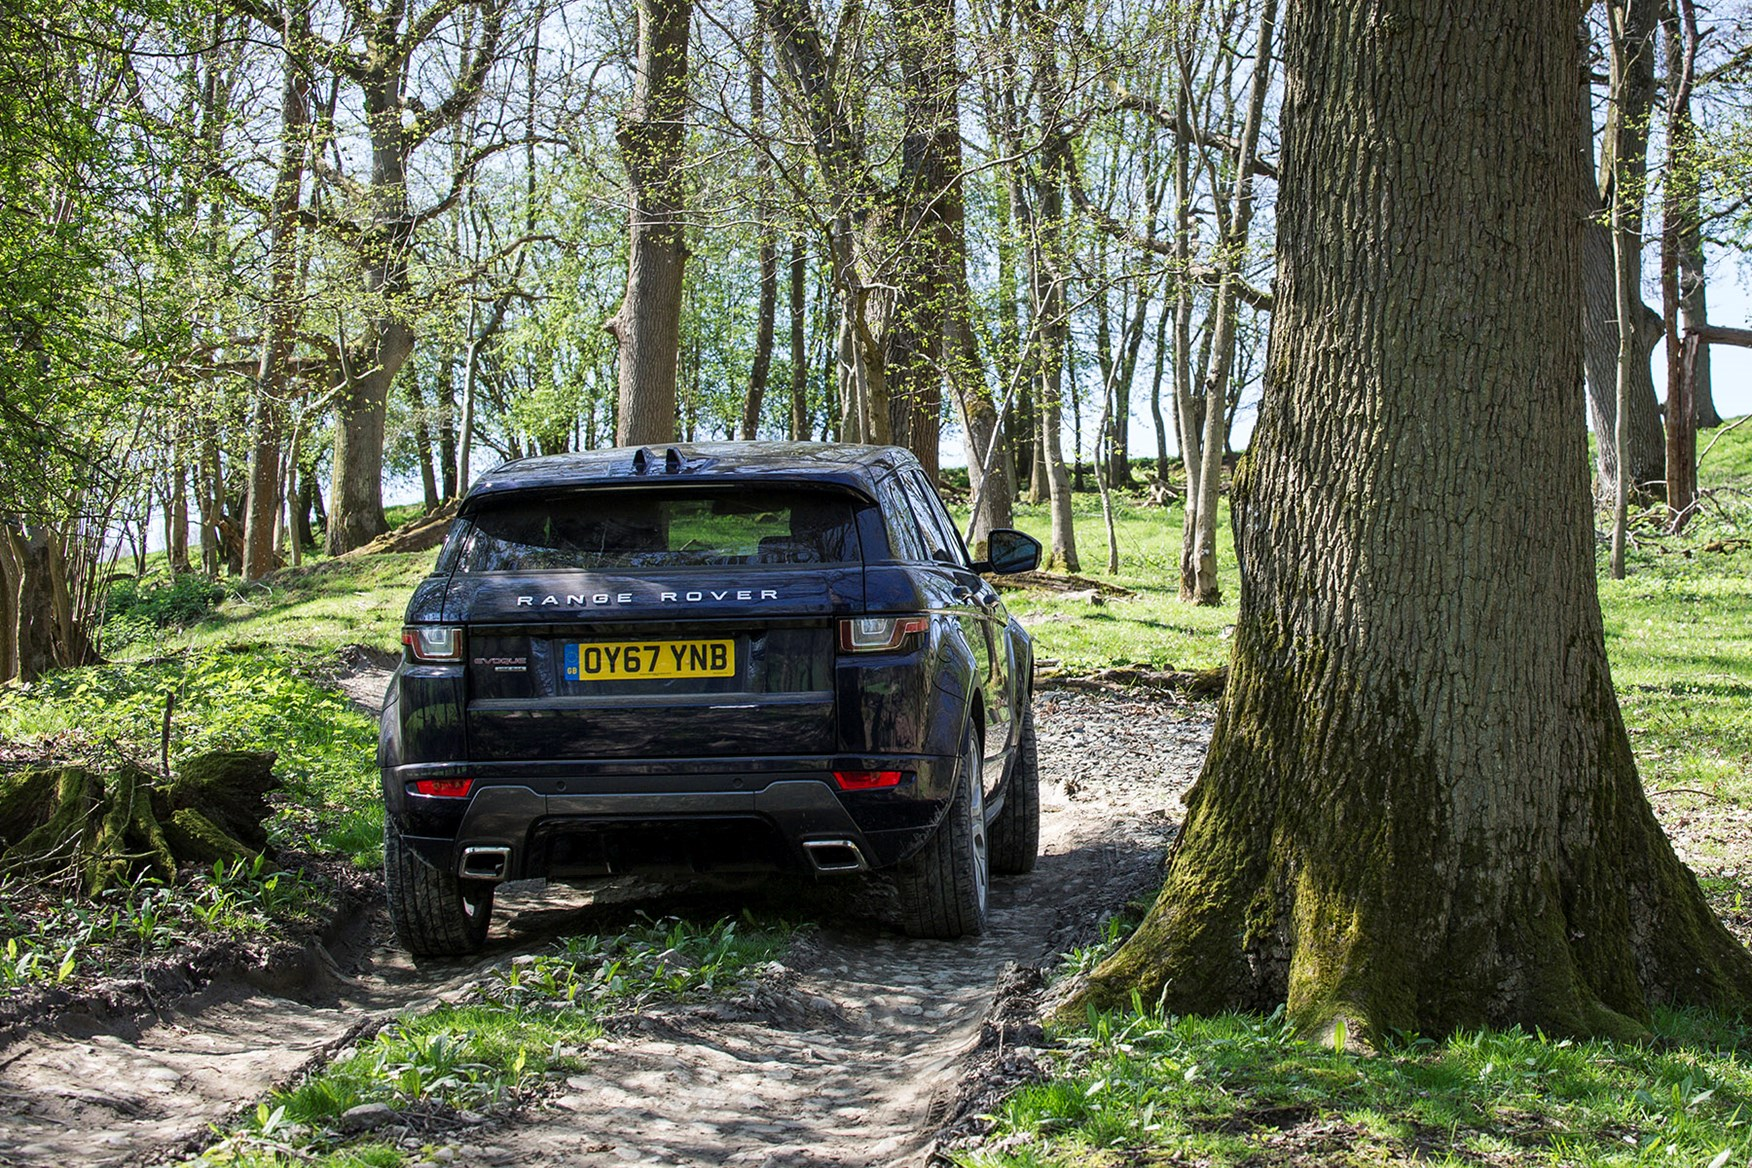 Range Rover Evoque off-road at Eastnor Castle